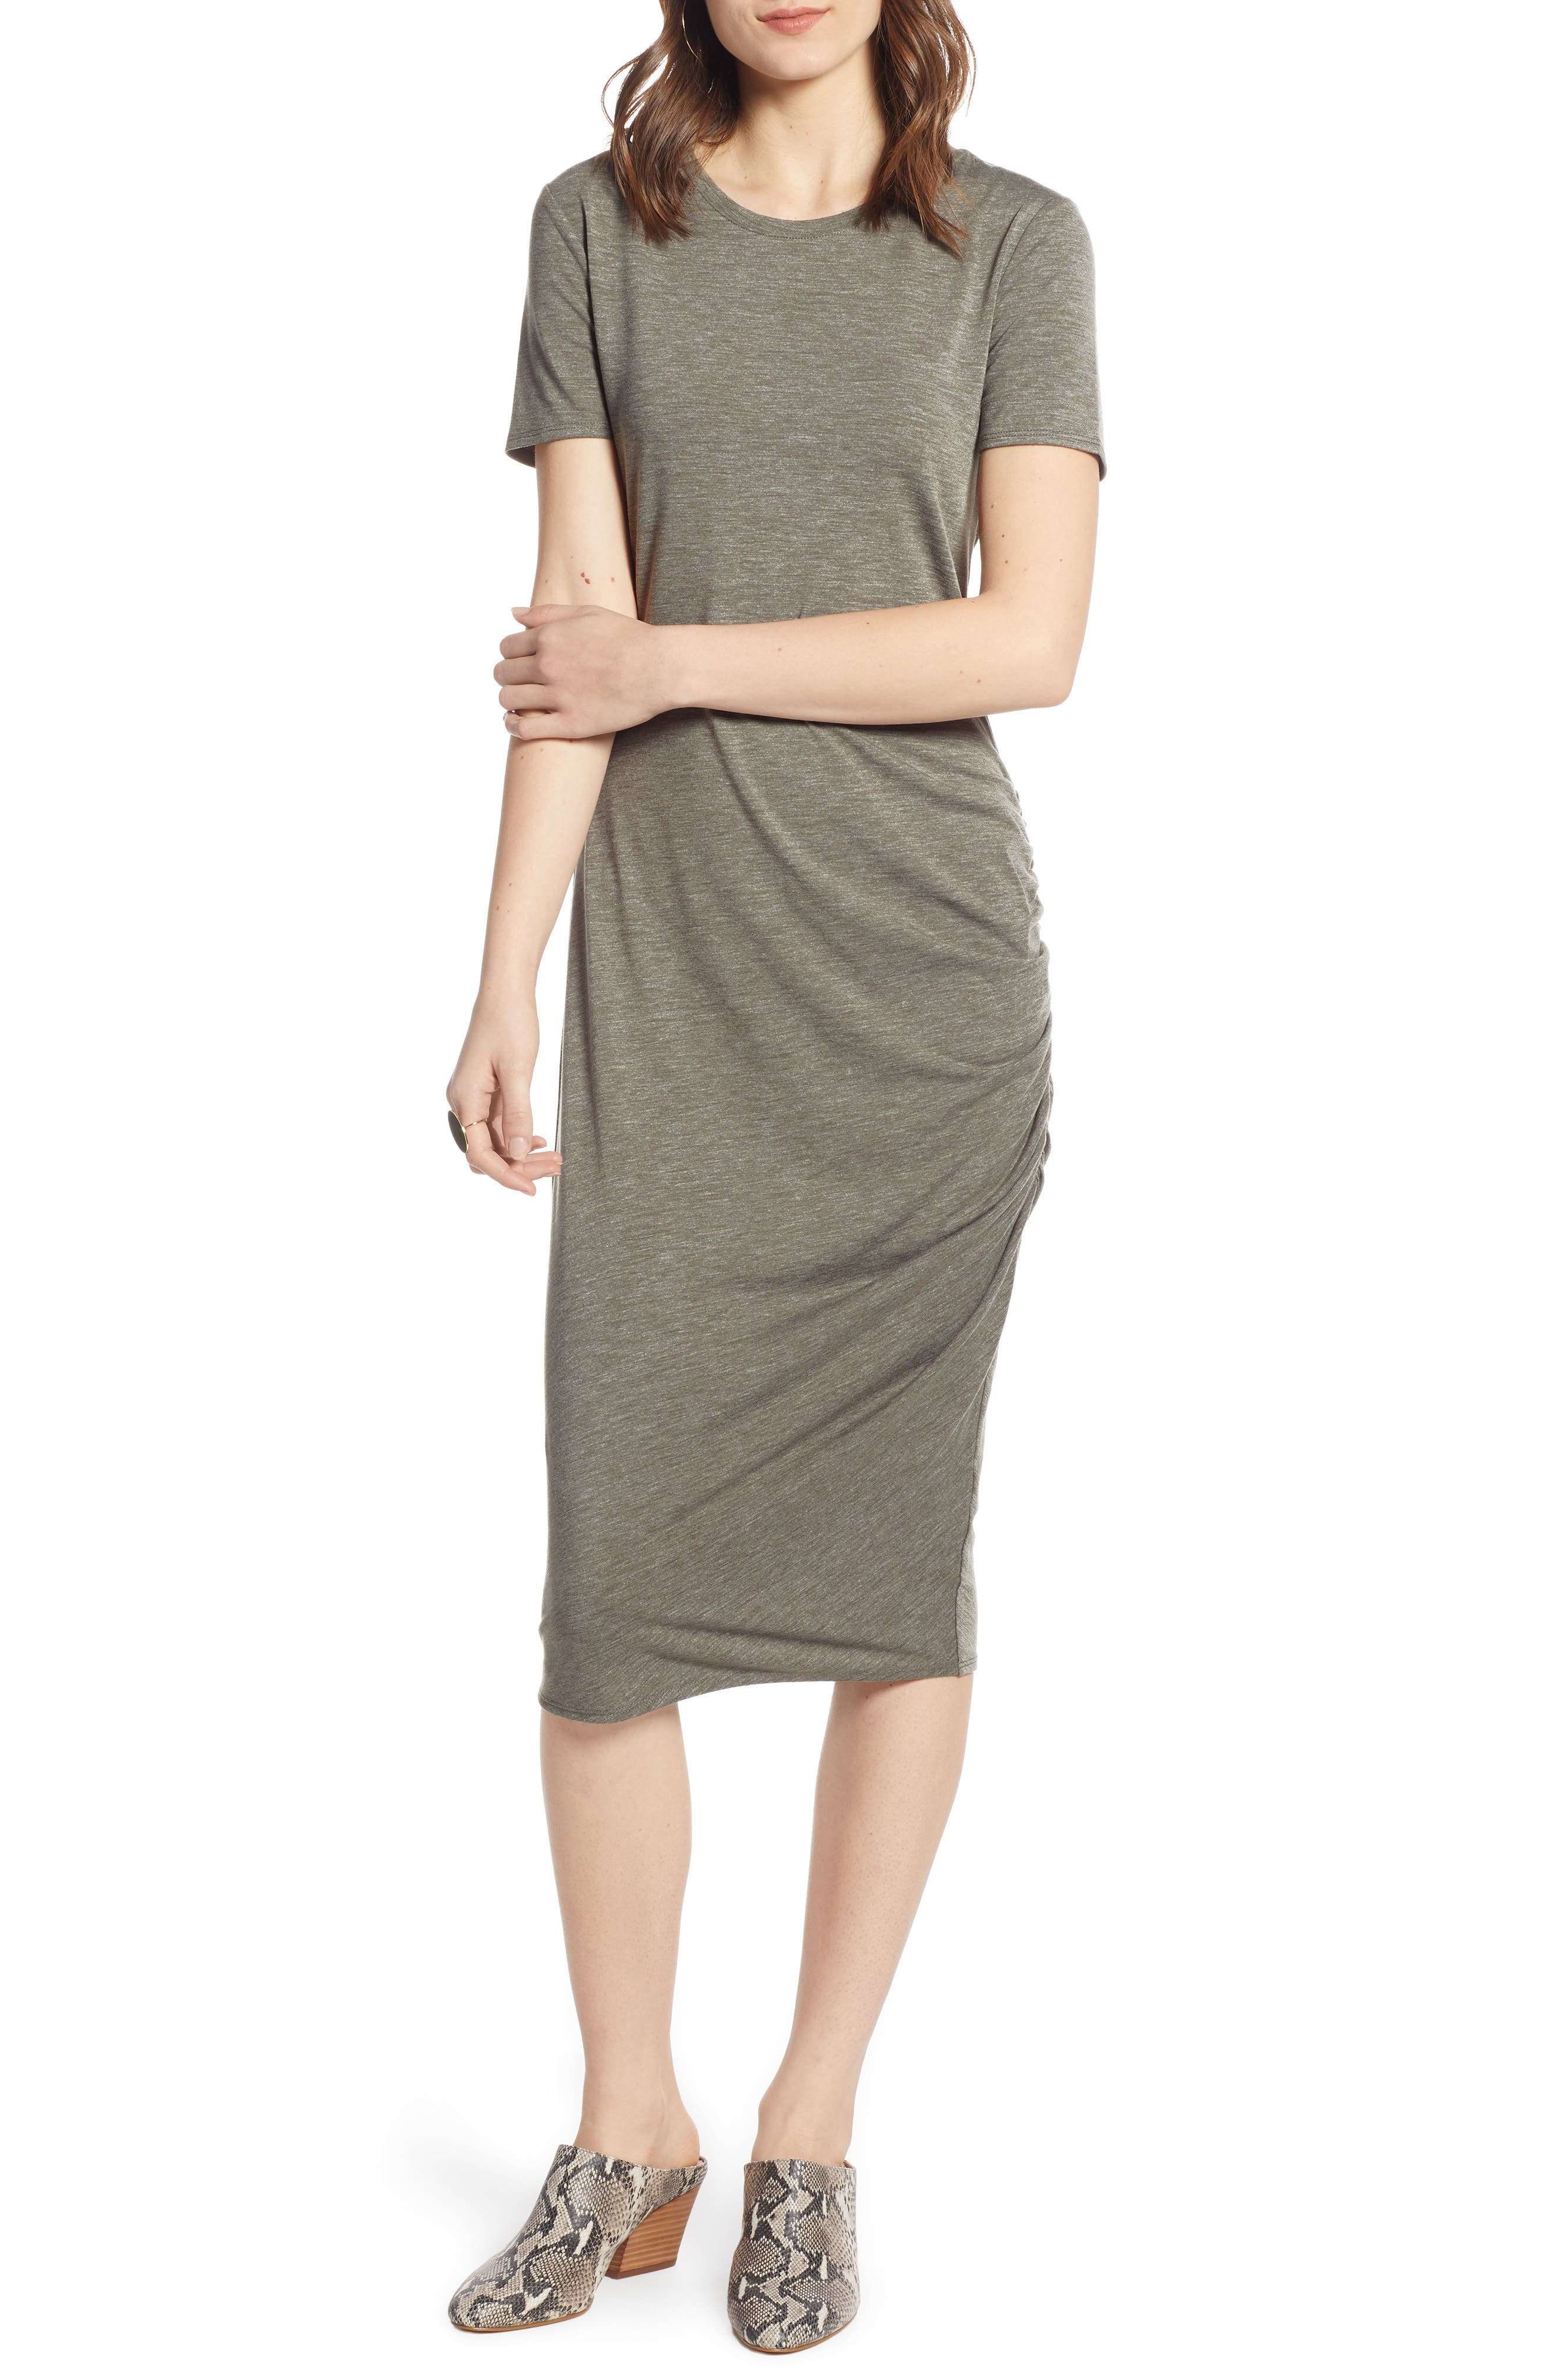 TREASURE & BOND, Side Ruched Body-Con Dress, Main thumbnail 1, color, OLIVE SARMA HEATHER